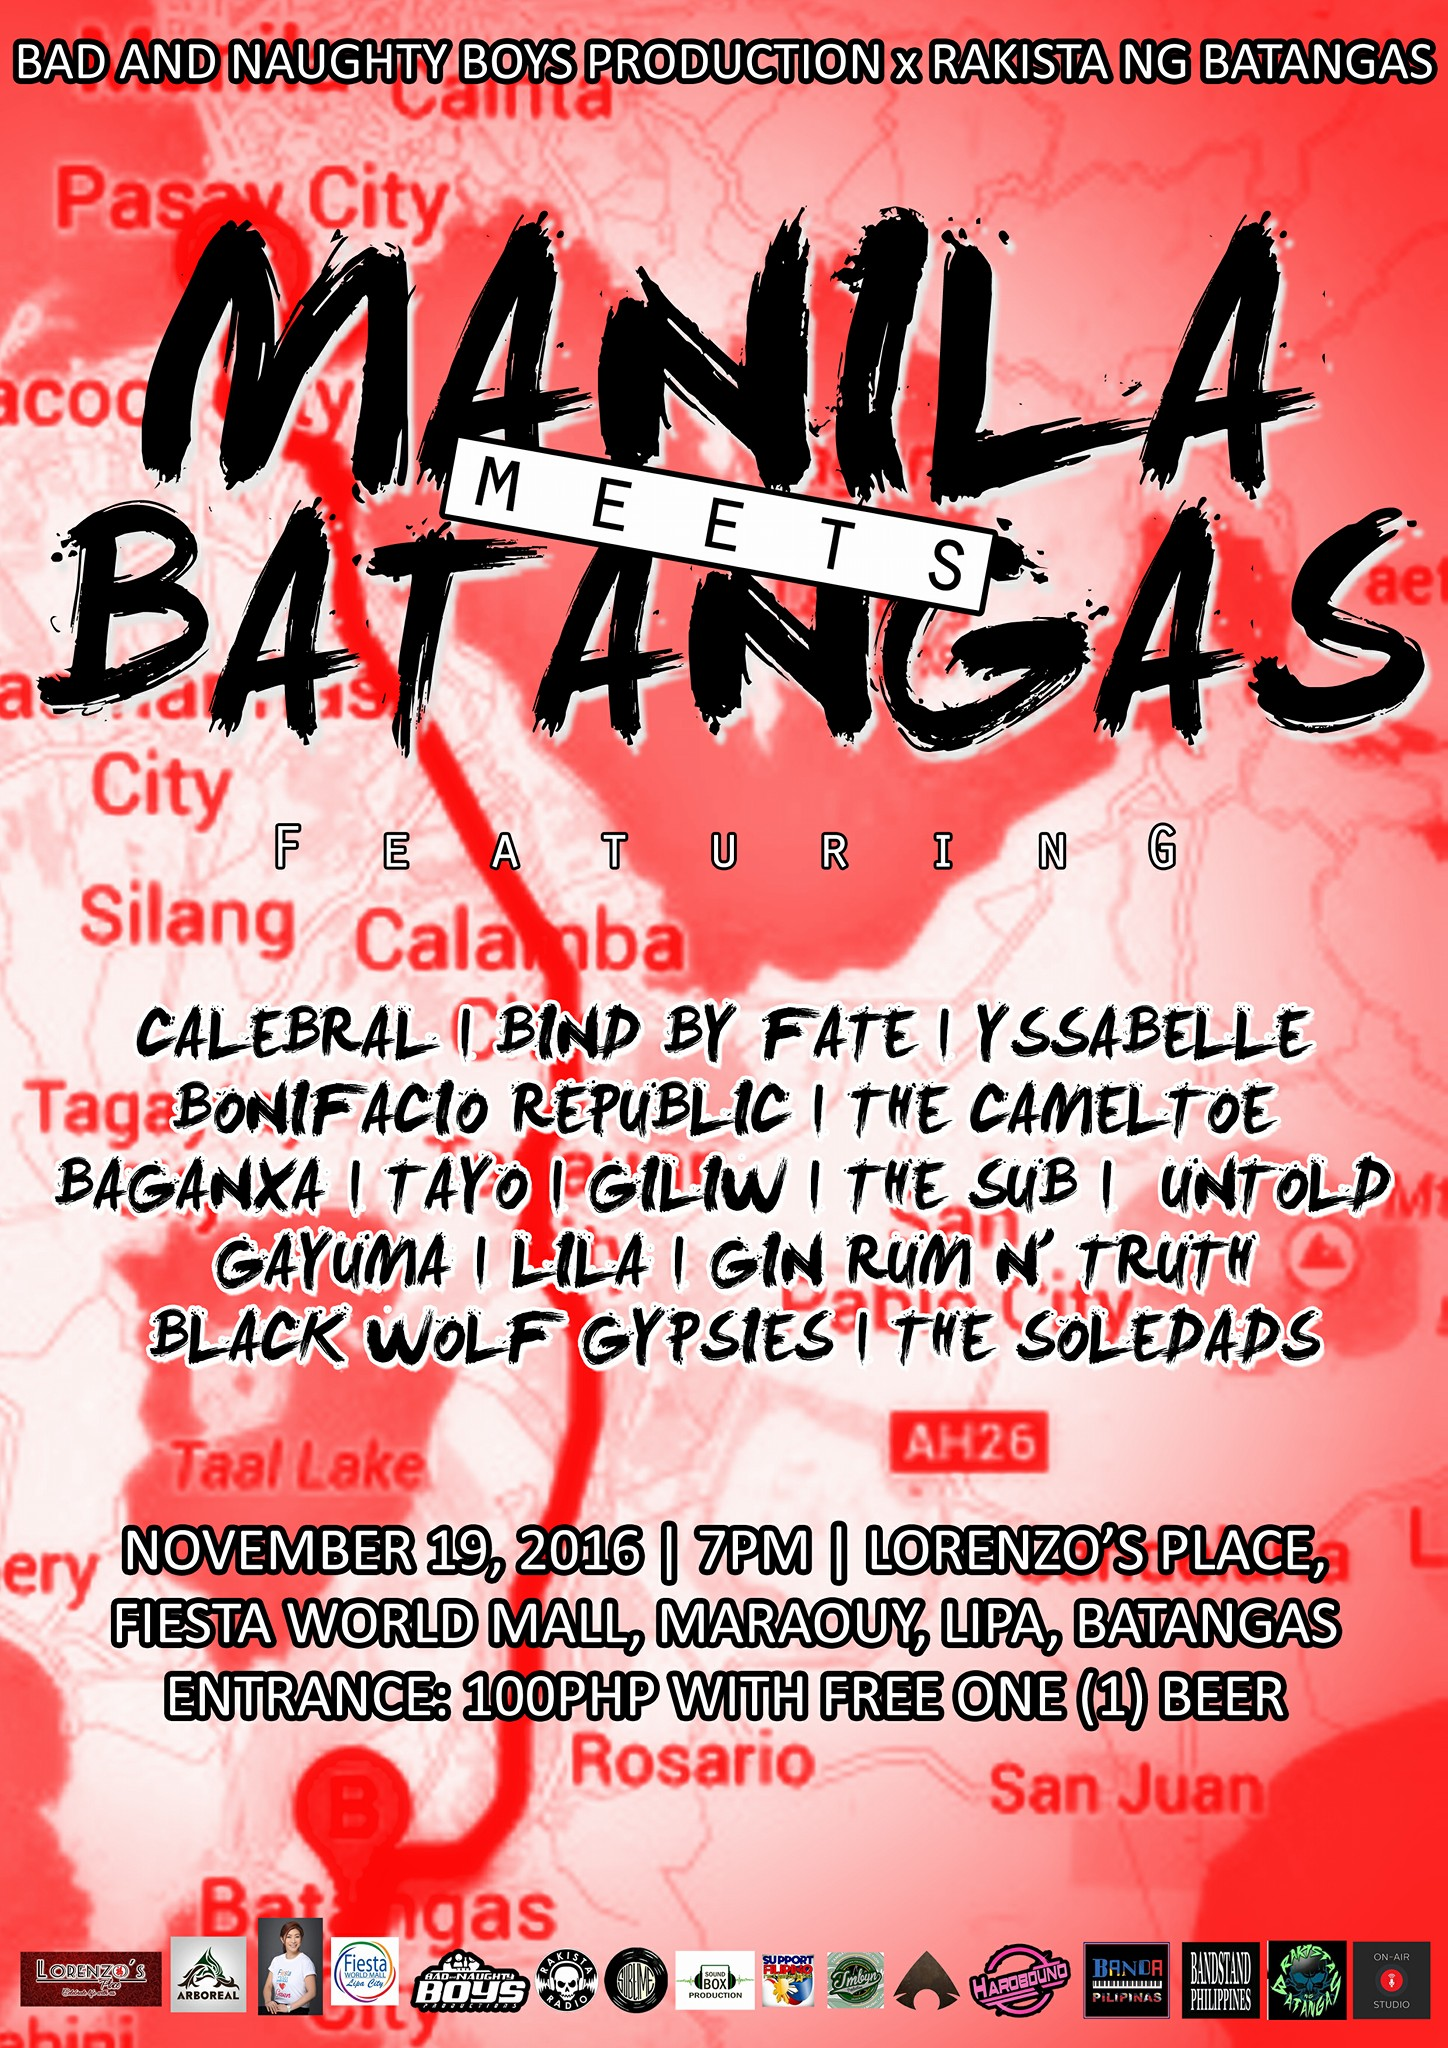 Bad and Naughty Boys Production and Rakista ng Batangas presents: Manila meets Batangas November 19, 2016 Lorenzo's Place SWIMMING after gig, BONDING TIME with performances by CALEBRAL / Yssabelle / The SUB -SUBersibo / Bonifacio Republic / Lila / Bind by Fate /Tayo / Black Wolf Gypsies Music / Untold - Mindoro / The Cameltoe / The Soledads / GRT - Gin Rum and Truth / Baganxa / Giliw / GAYUMA 100 pesos entrance with 1 beer we will giving away shirts and cds (limited stock) event supported by Rakista Radio / Hardbound / ARBOREAL / Banda Pilipinas / Fiesta World Mall, Lipa City / Bandstand Philippines / Tambayan Production / Sublime Event Productions / Agimat: Sining at Kulturang Pinoy / @Support Support Filipino Rock Bands / Artist / Sound Box Production / Councilor Gwen Wong / On-Air Studio — with Lawro Pagulayan, Aldwin Maralit Tolosa, Mike Twain, Mark Albert Contreras, Julius Publico, Gian Carlo, Ramil Lin, Yok Tano, Dino Villamayor, JapzNoel Cruz Panaligan, Pol Calinawan, Kirby Pernia Wagas, Alain Sagragao, Milky Way, Bryan Baltazar, Carl Miranda, Vinzz Encinares II, Bryan Pernis and Toks Paras.